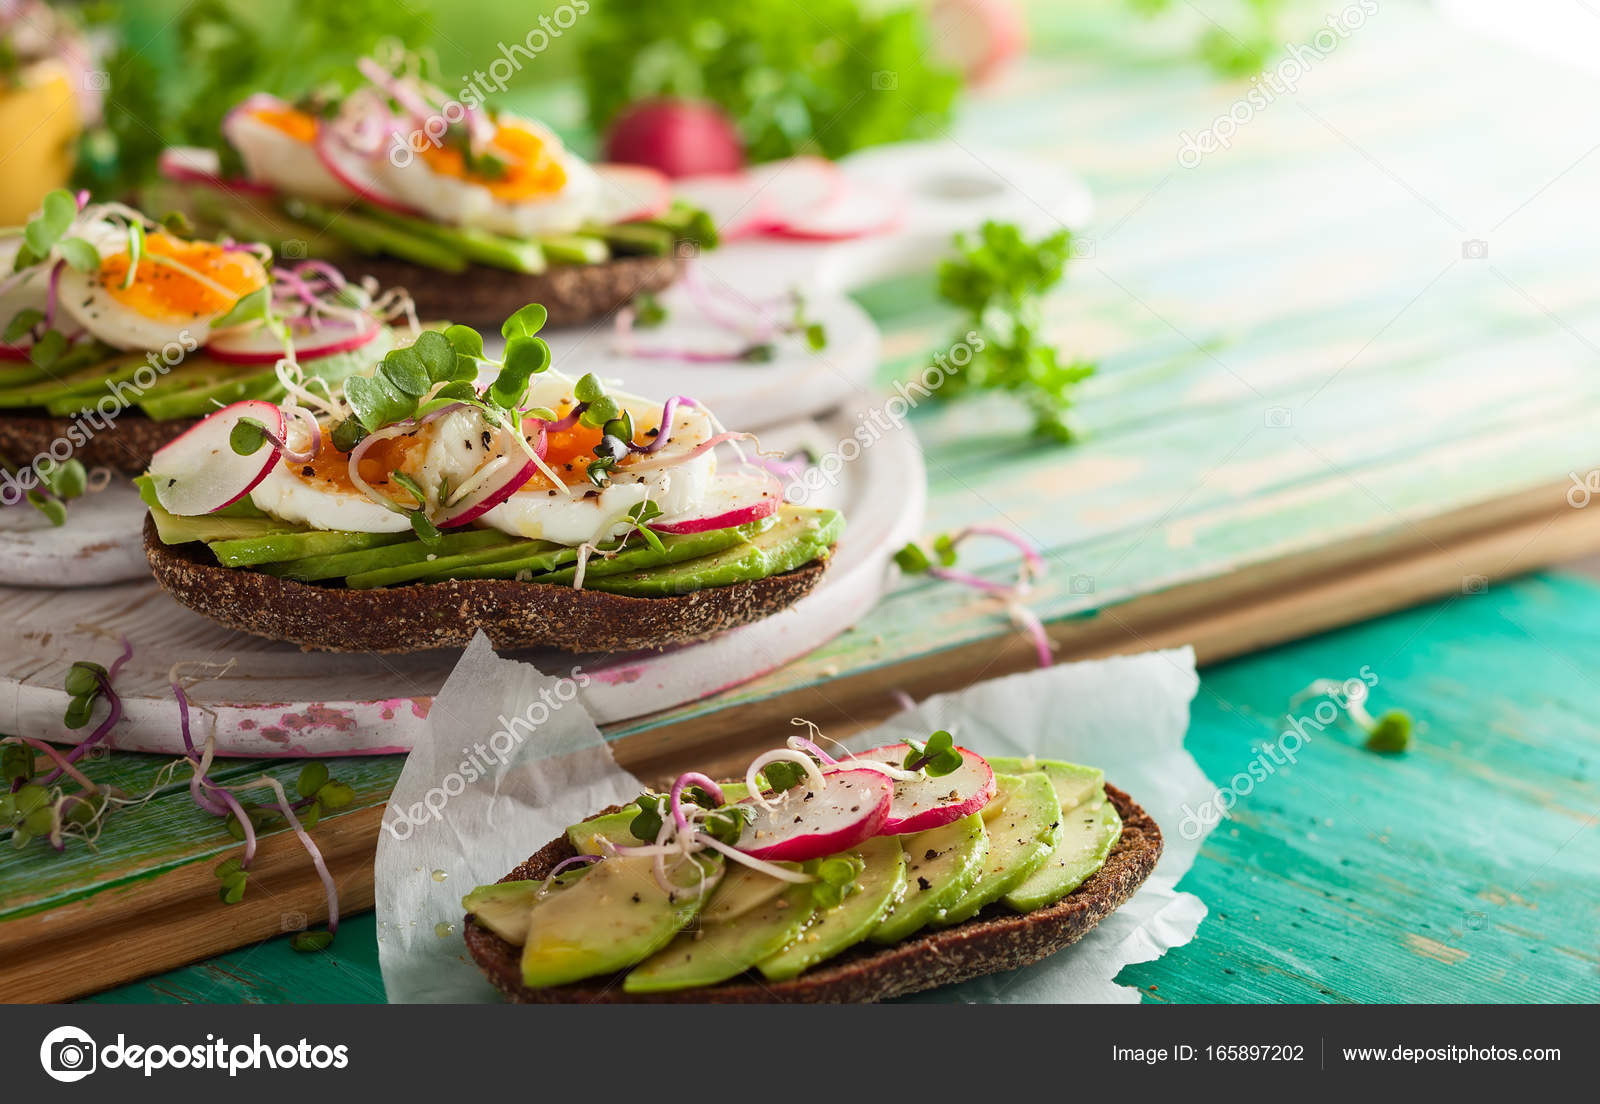 Broodje Avocado Ei Open Broodjes Met Avocado En Ei Stockfoto Sarsmis 165897202